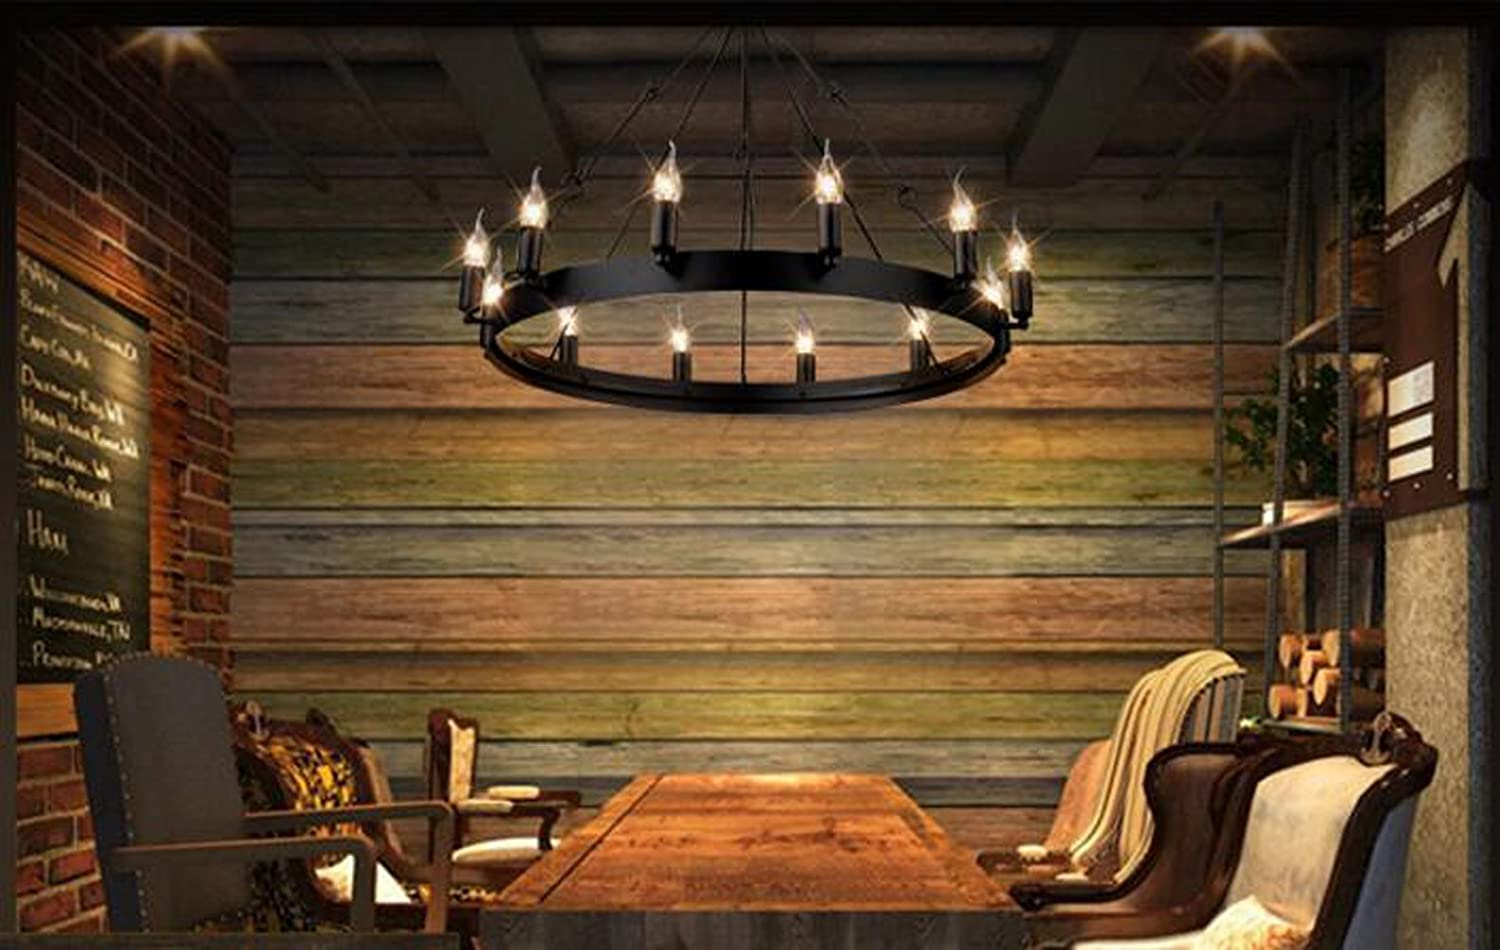 Aiwen classical iron chandelier single deck simple pendant light aiwen classical iron chandelier single deck simple pendant light celling lamp bulbs not included black 18 lamp holders amazon arubaitofo Images